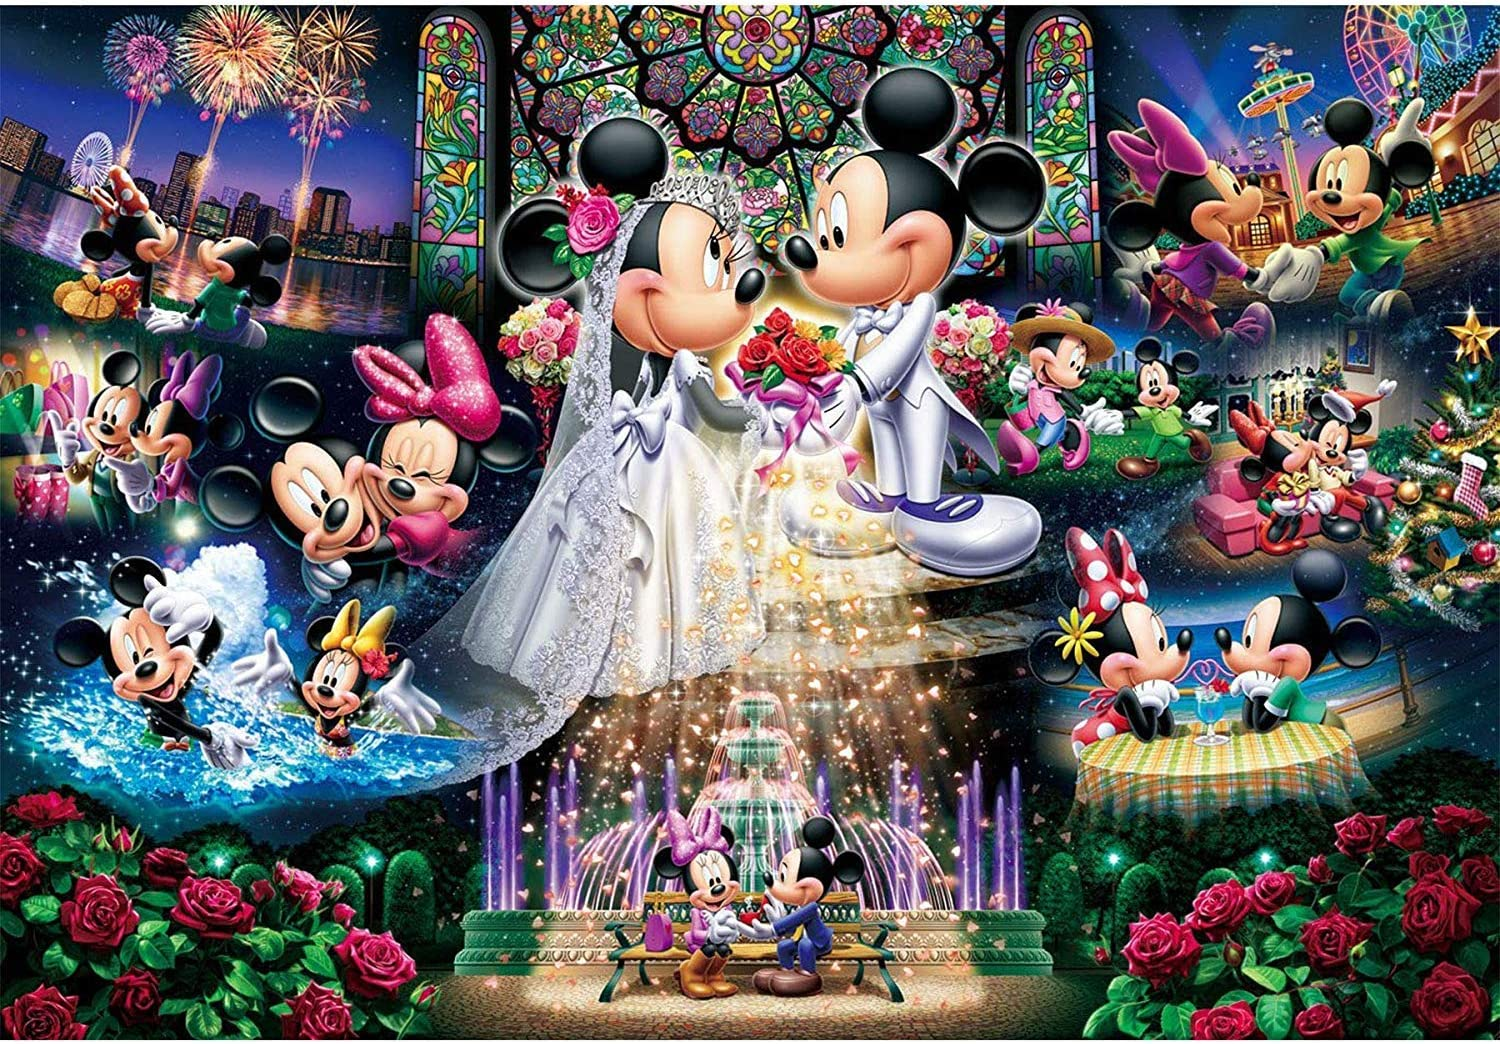 Full drill 5D diamond painting Mickey Mouse furniture decoration technology